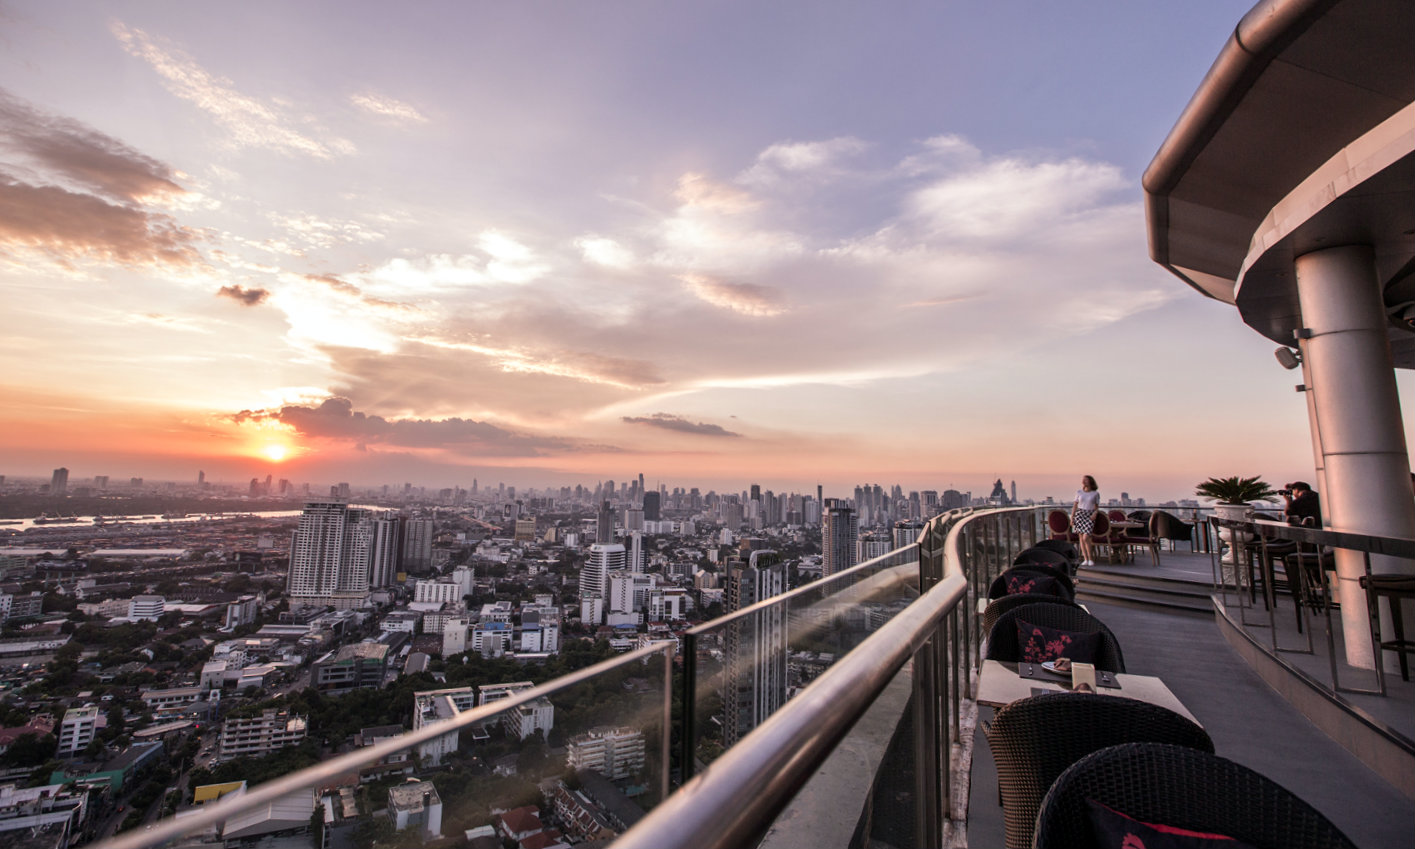 The views from Cielo Sky Bar & Restaurant in Bangkok, Thailand